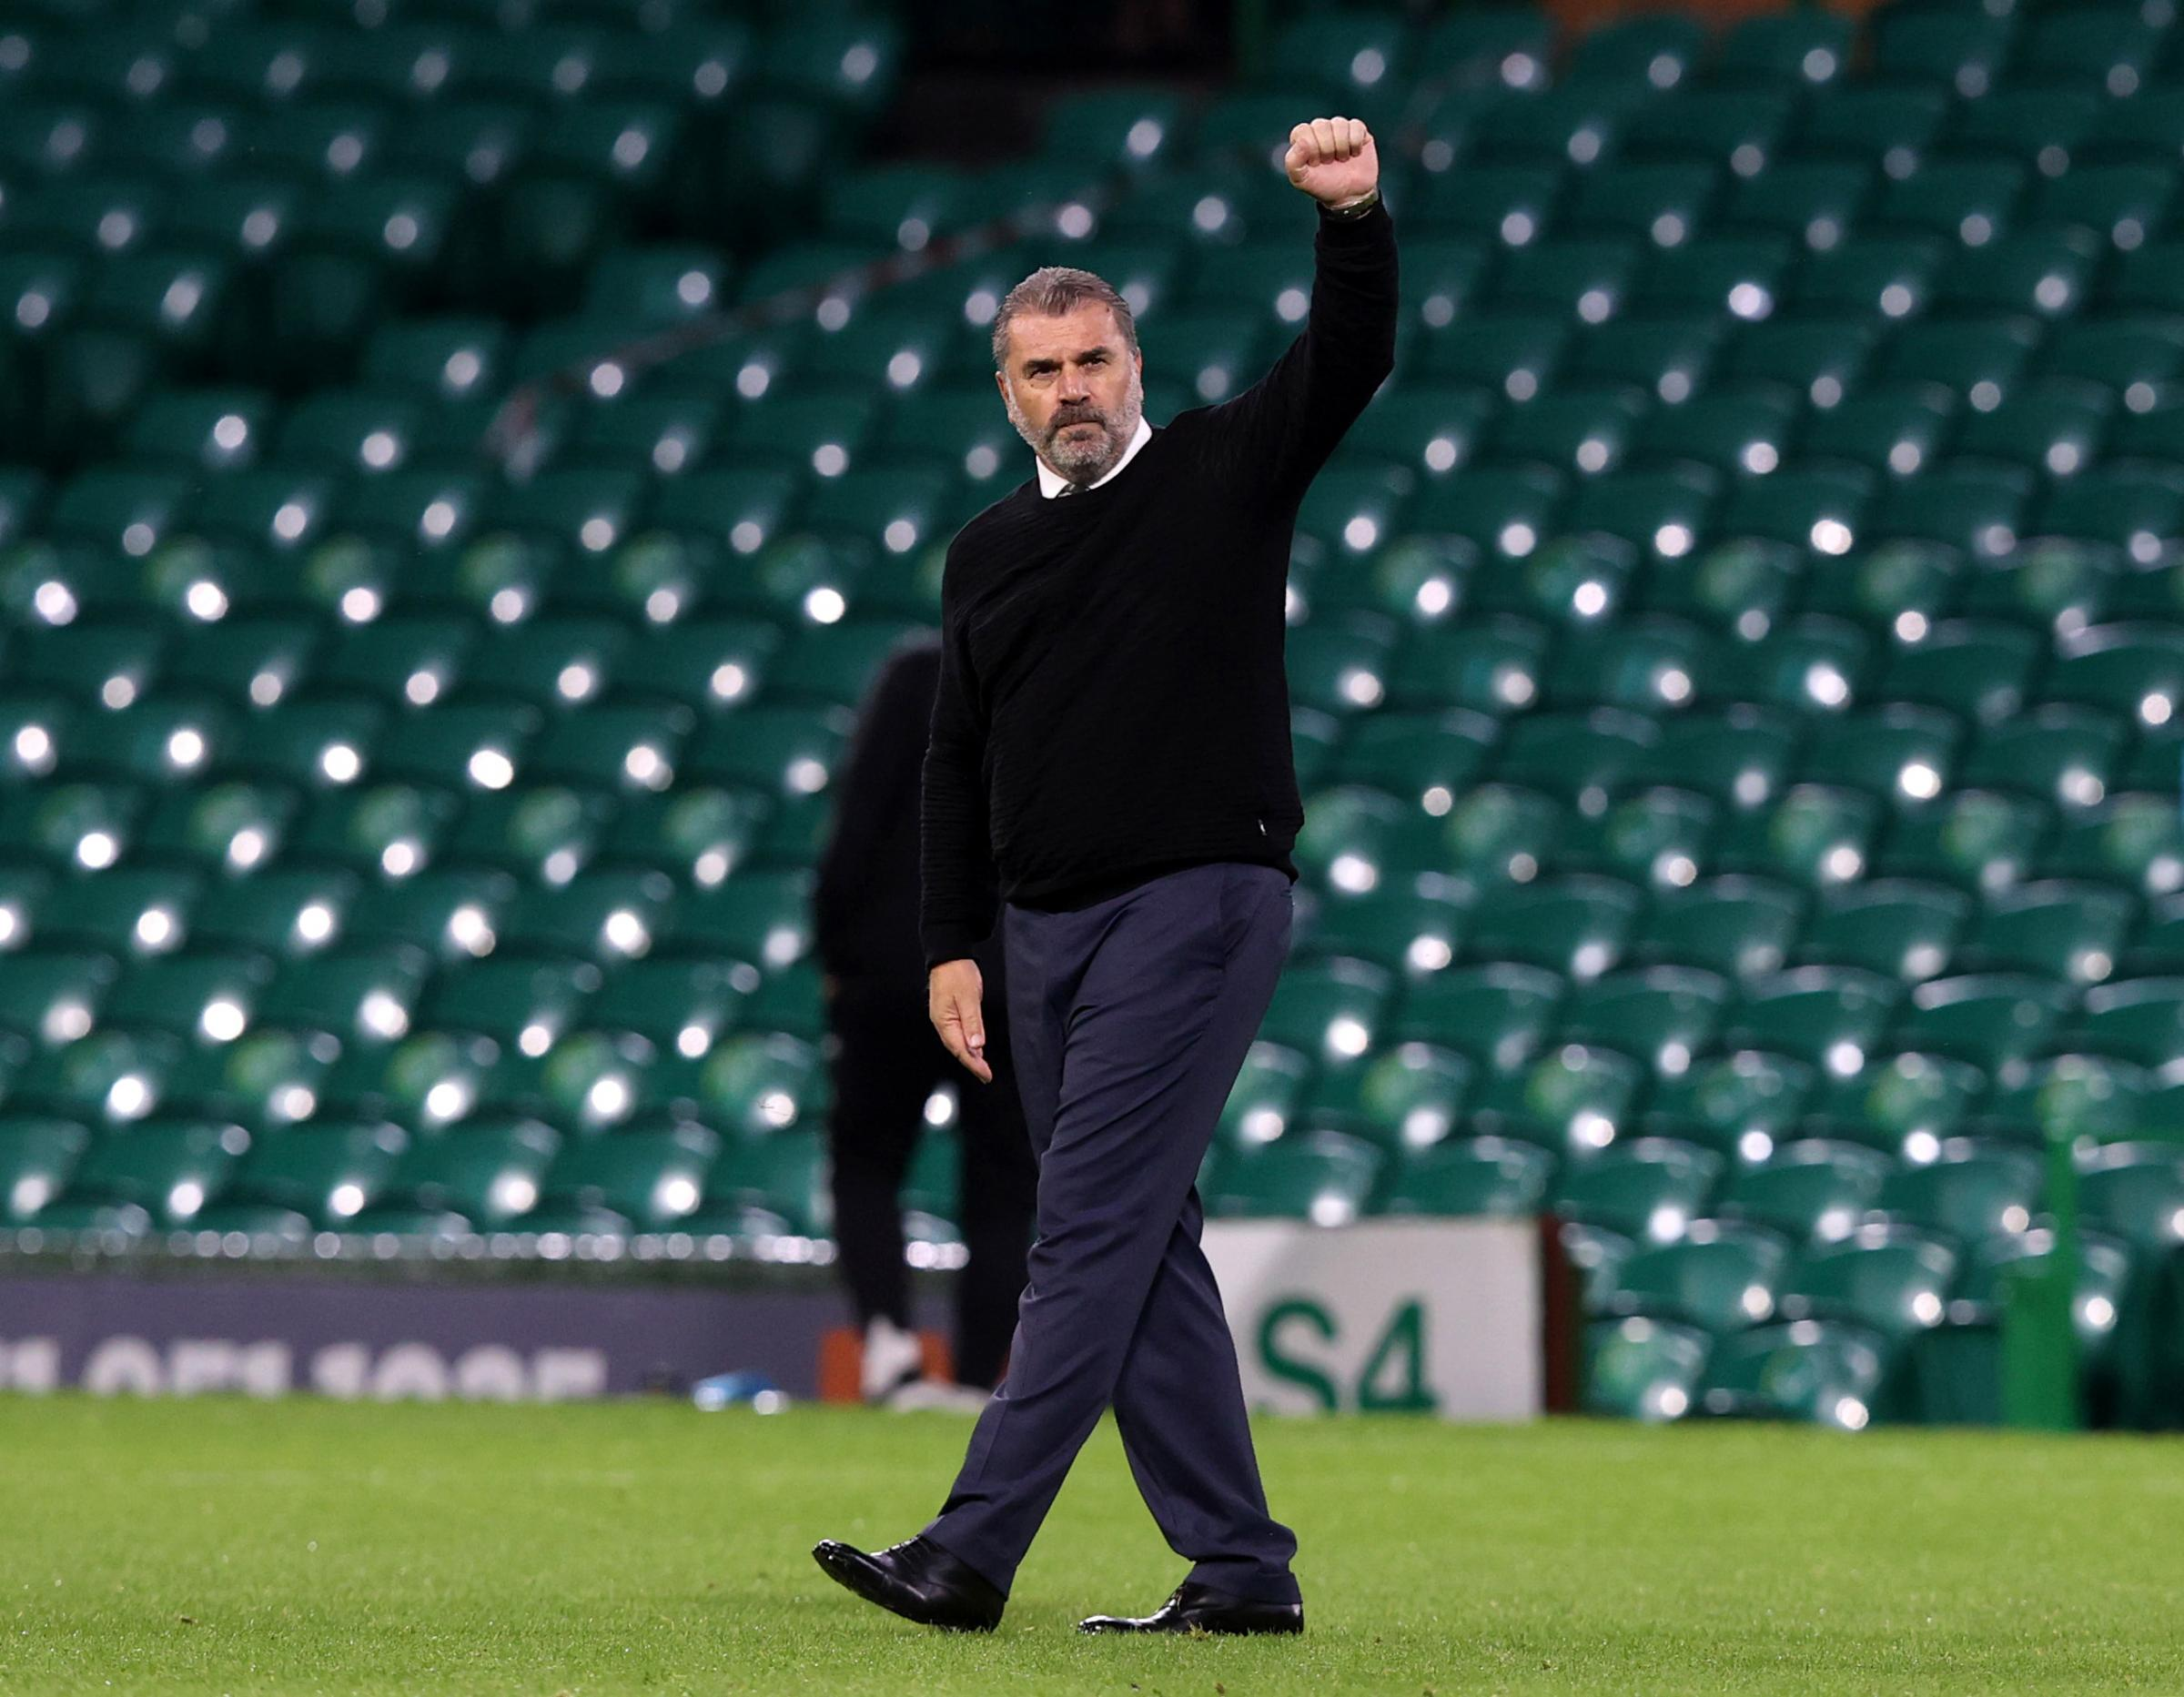 Ange Postecoglou on the 'incredible emotion' of Celtic Park as he praises bravery of his players